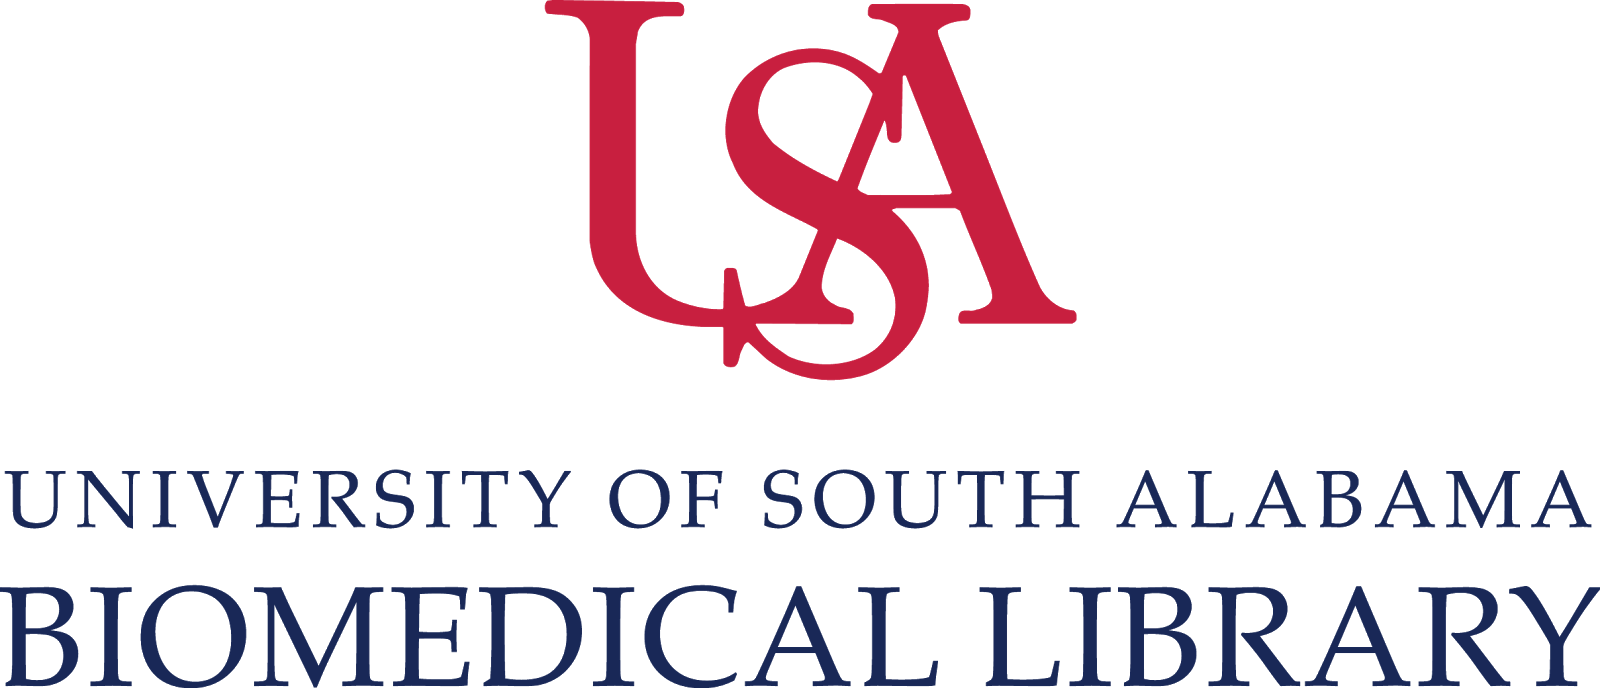 USA Biomedical Library Logo